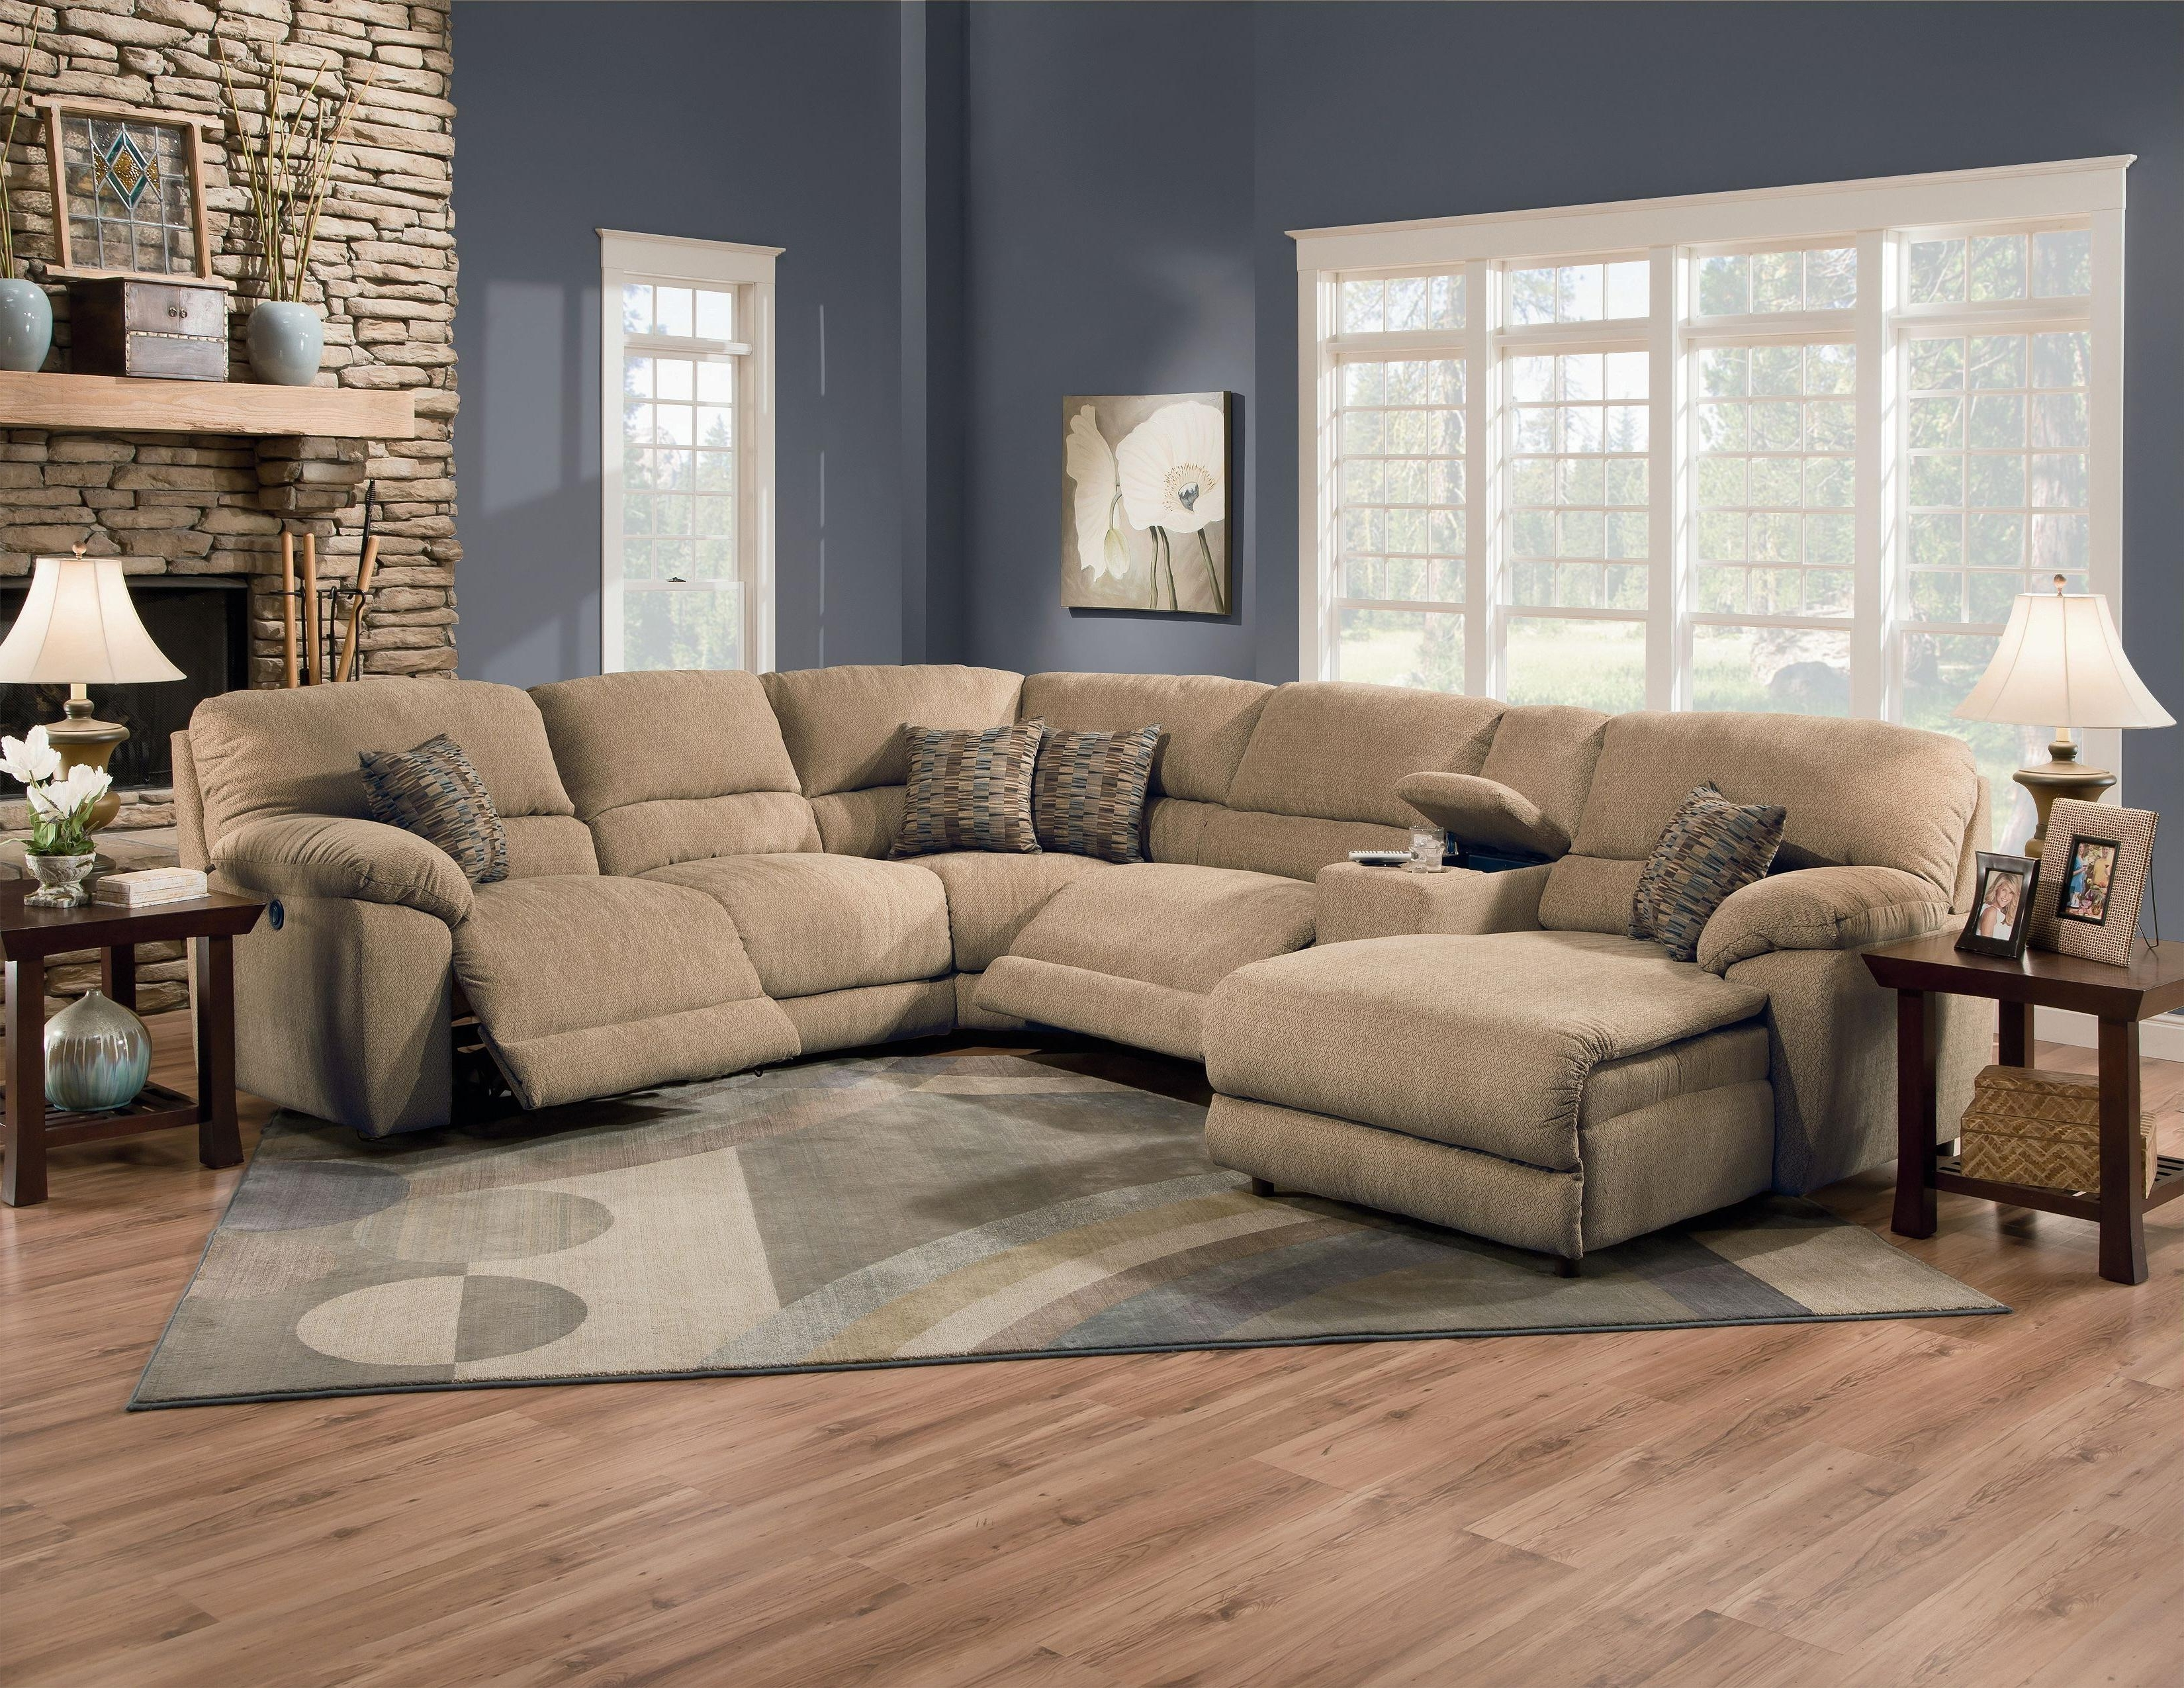 Lane Furniture Sofas Pertaining To 2017 Lane Furniture: Rivers Collection Featuring Power Reclining (View 7 of 15)